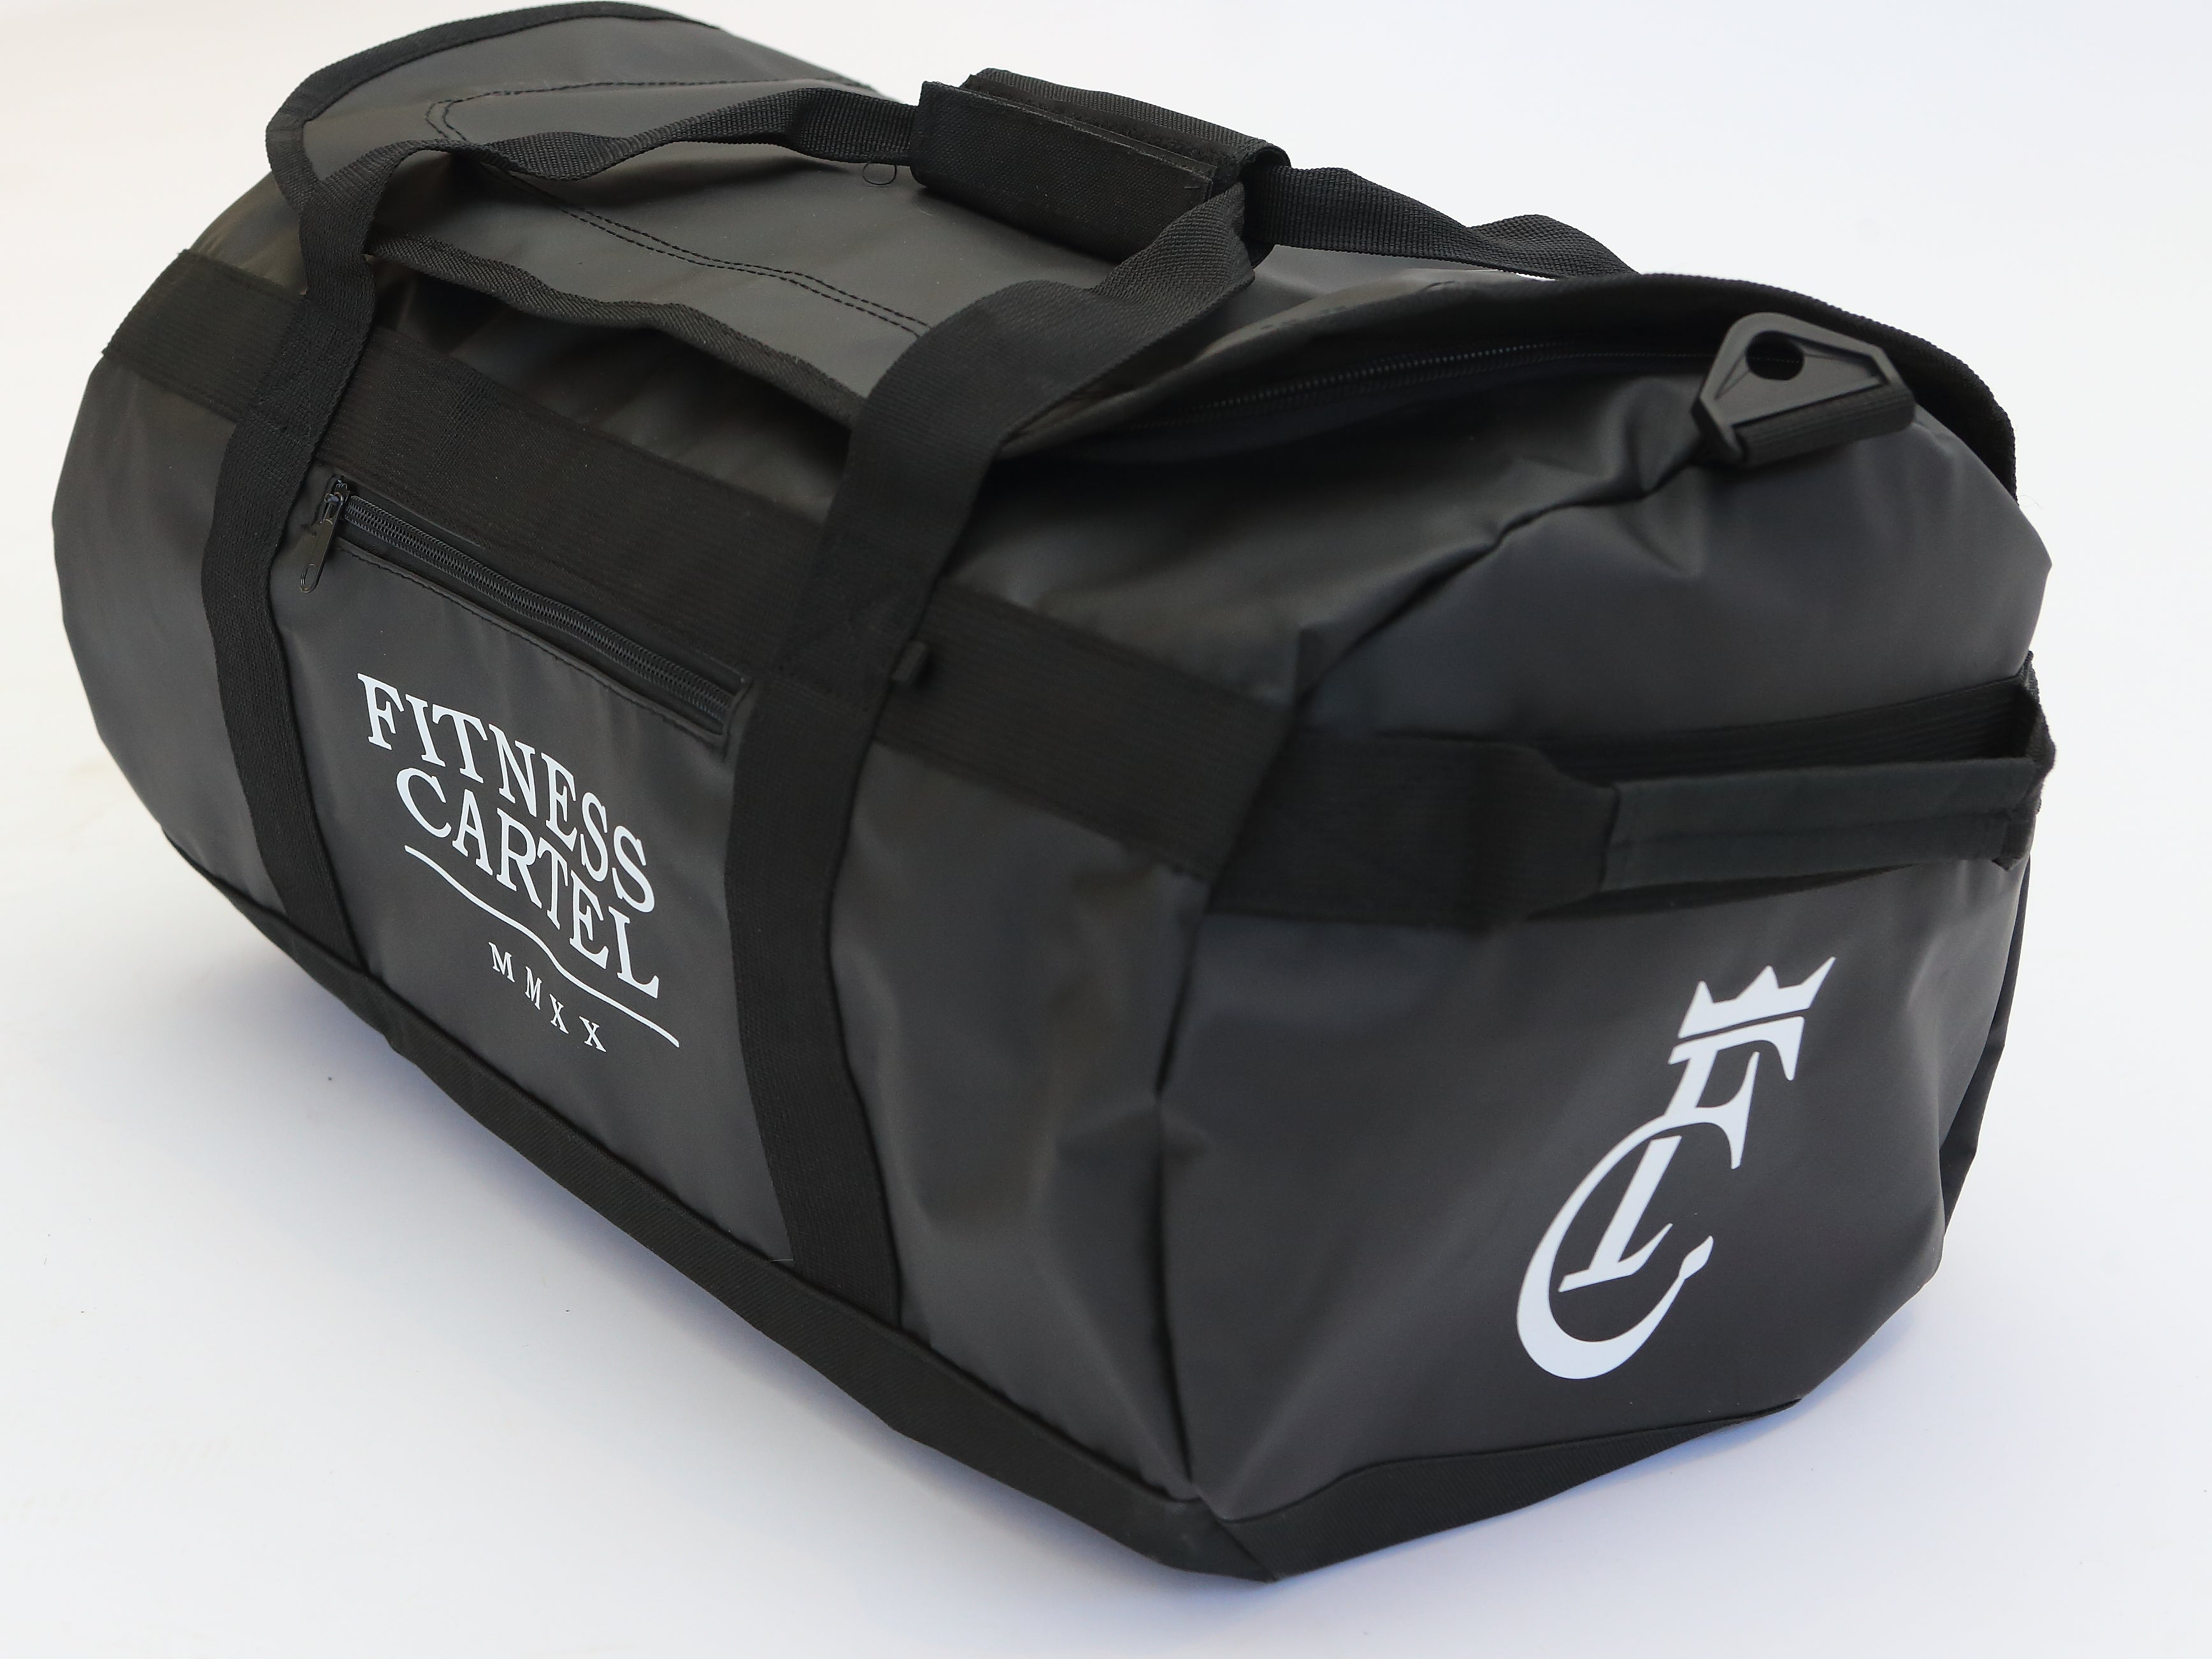 Fitness Cartel Gym Bags - White on Black